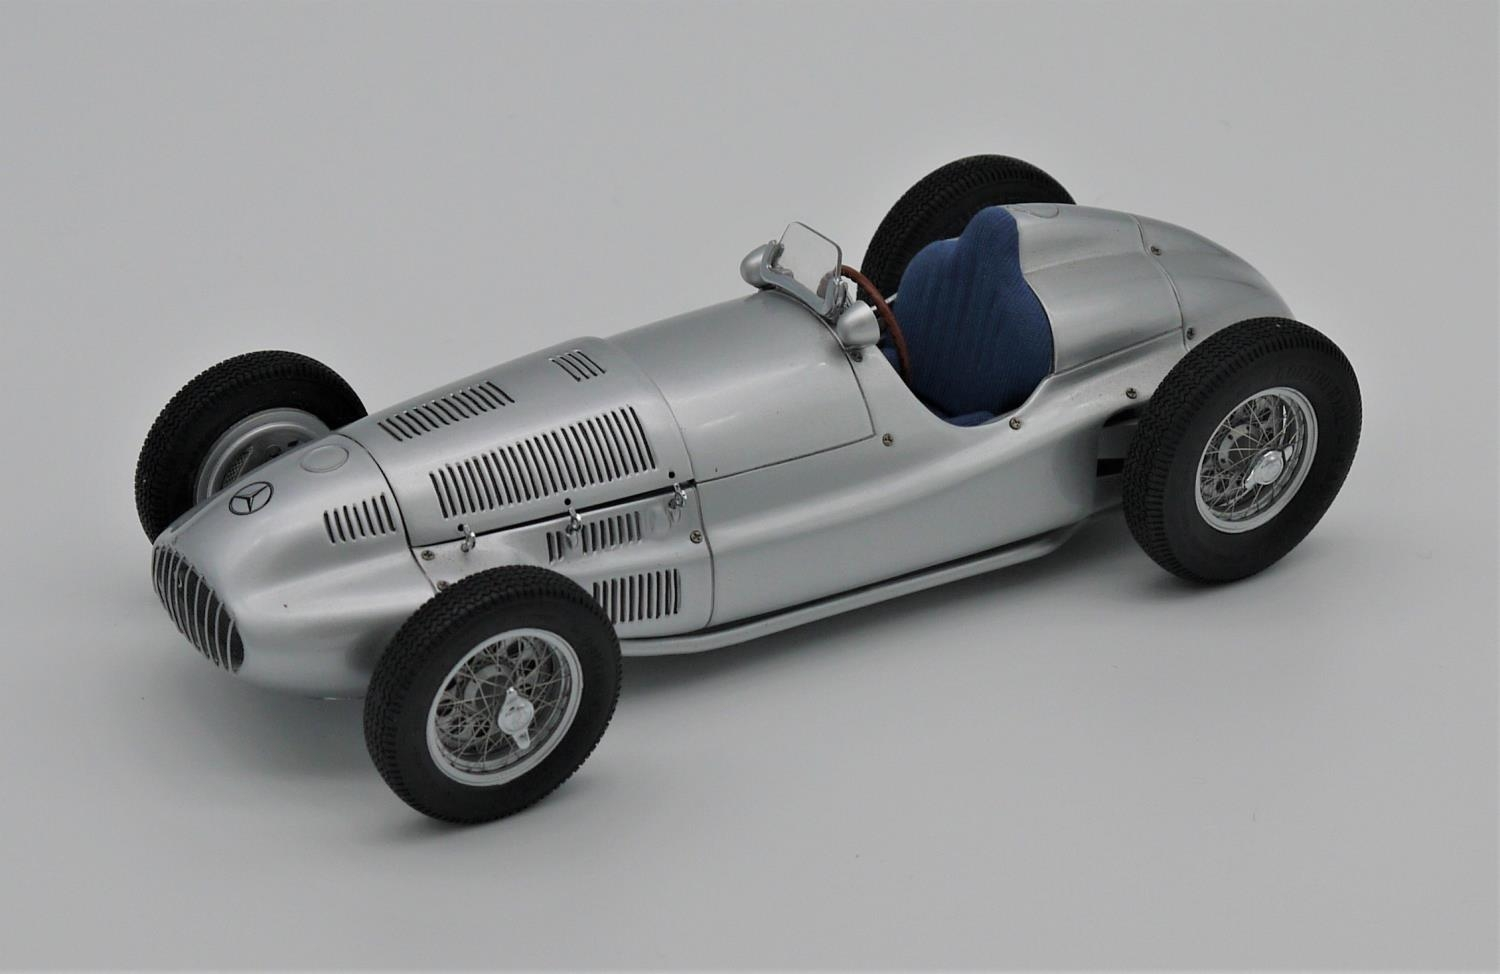 CMC MODELS 1:18 SCALE MODEL OF THE 1939 MERCEDES-BENZ W165 GRAND PRIX CAR (reference M018), accurate